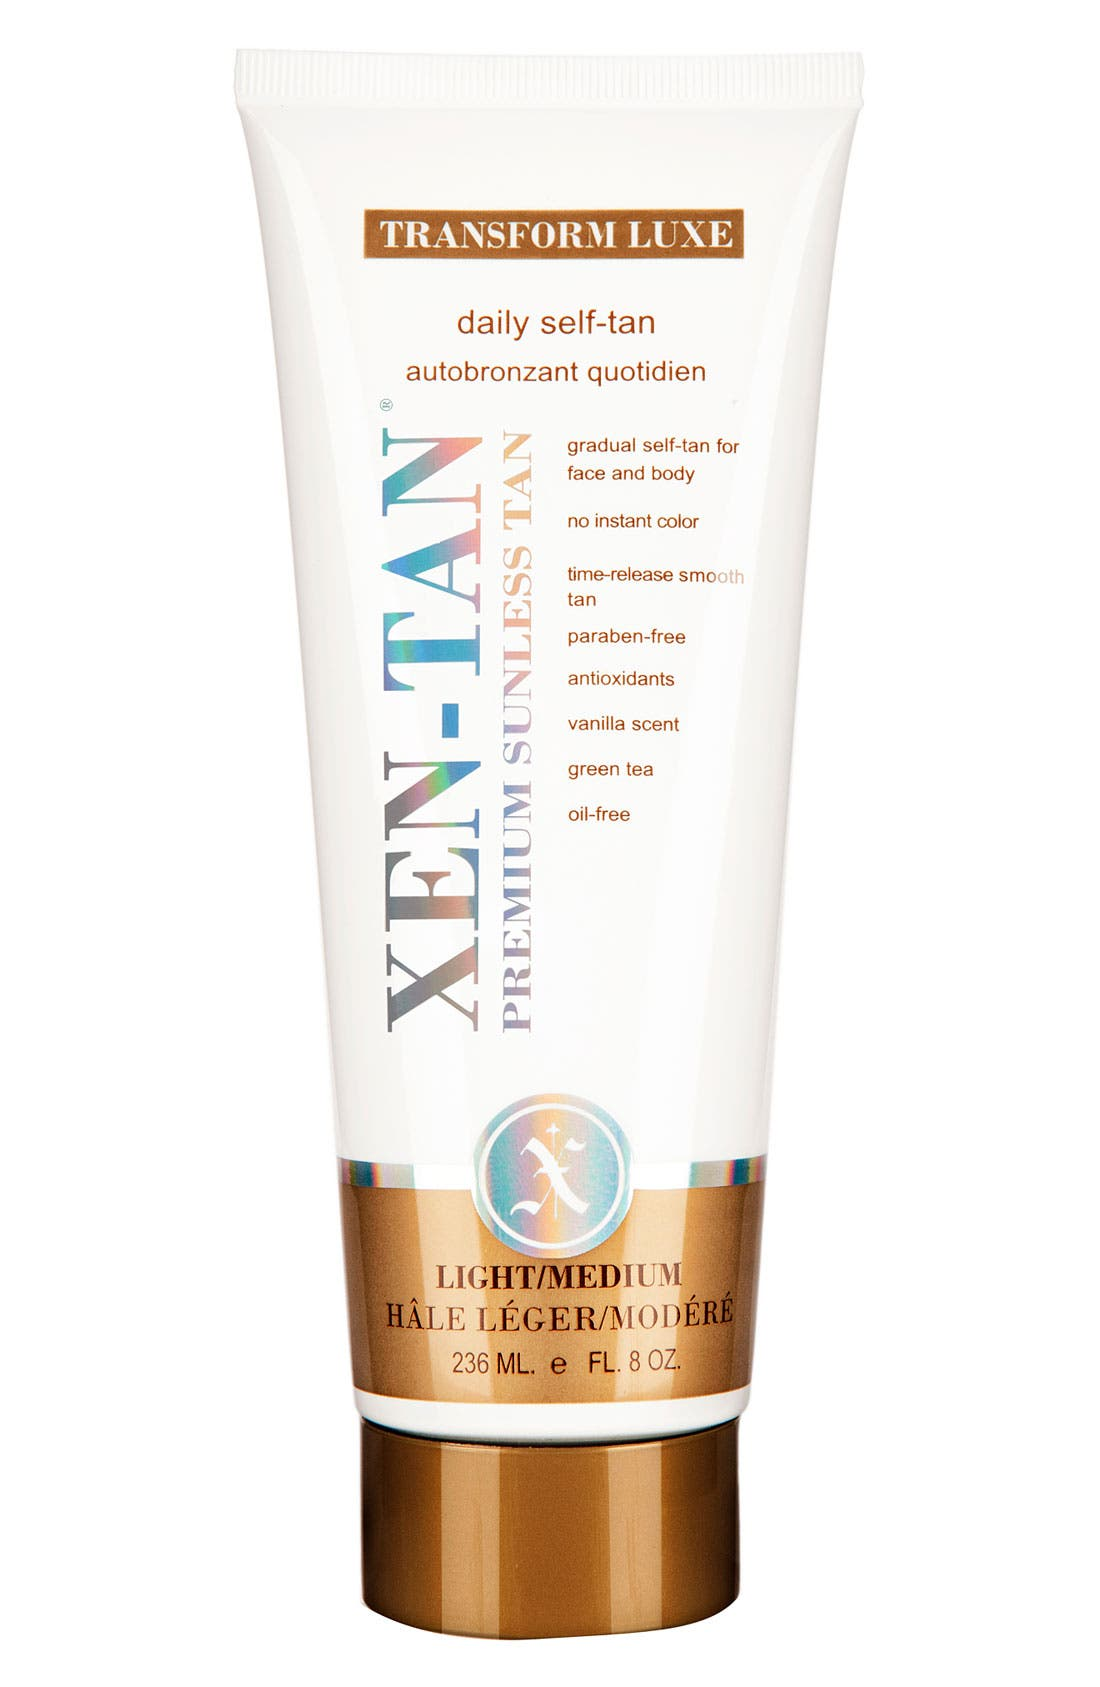 Xen-Tan® 'Transform Luxe' Premium Sunless Tan